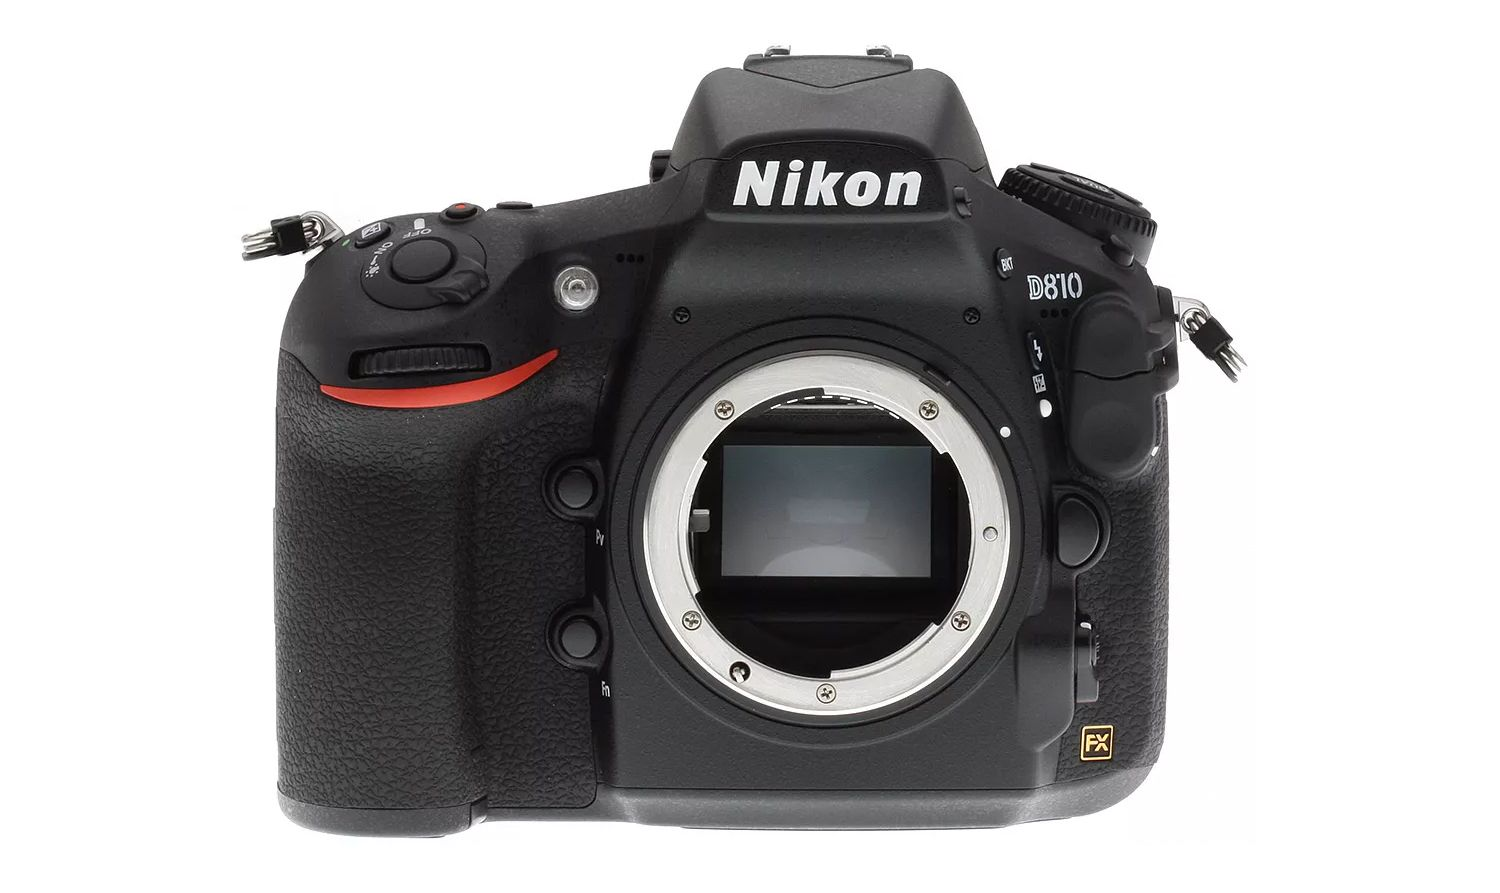 DSLR camera body without a lens attached